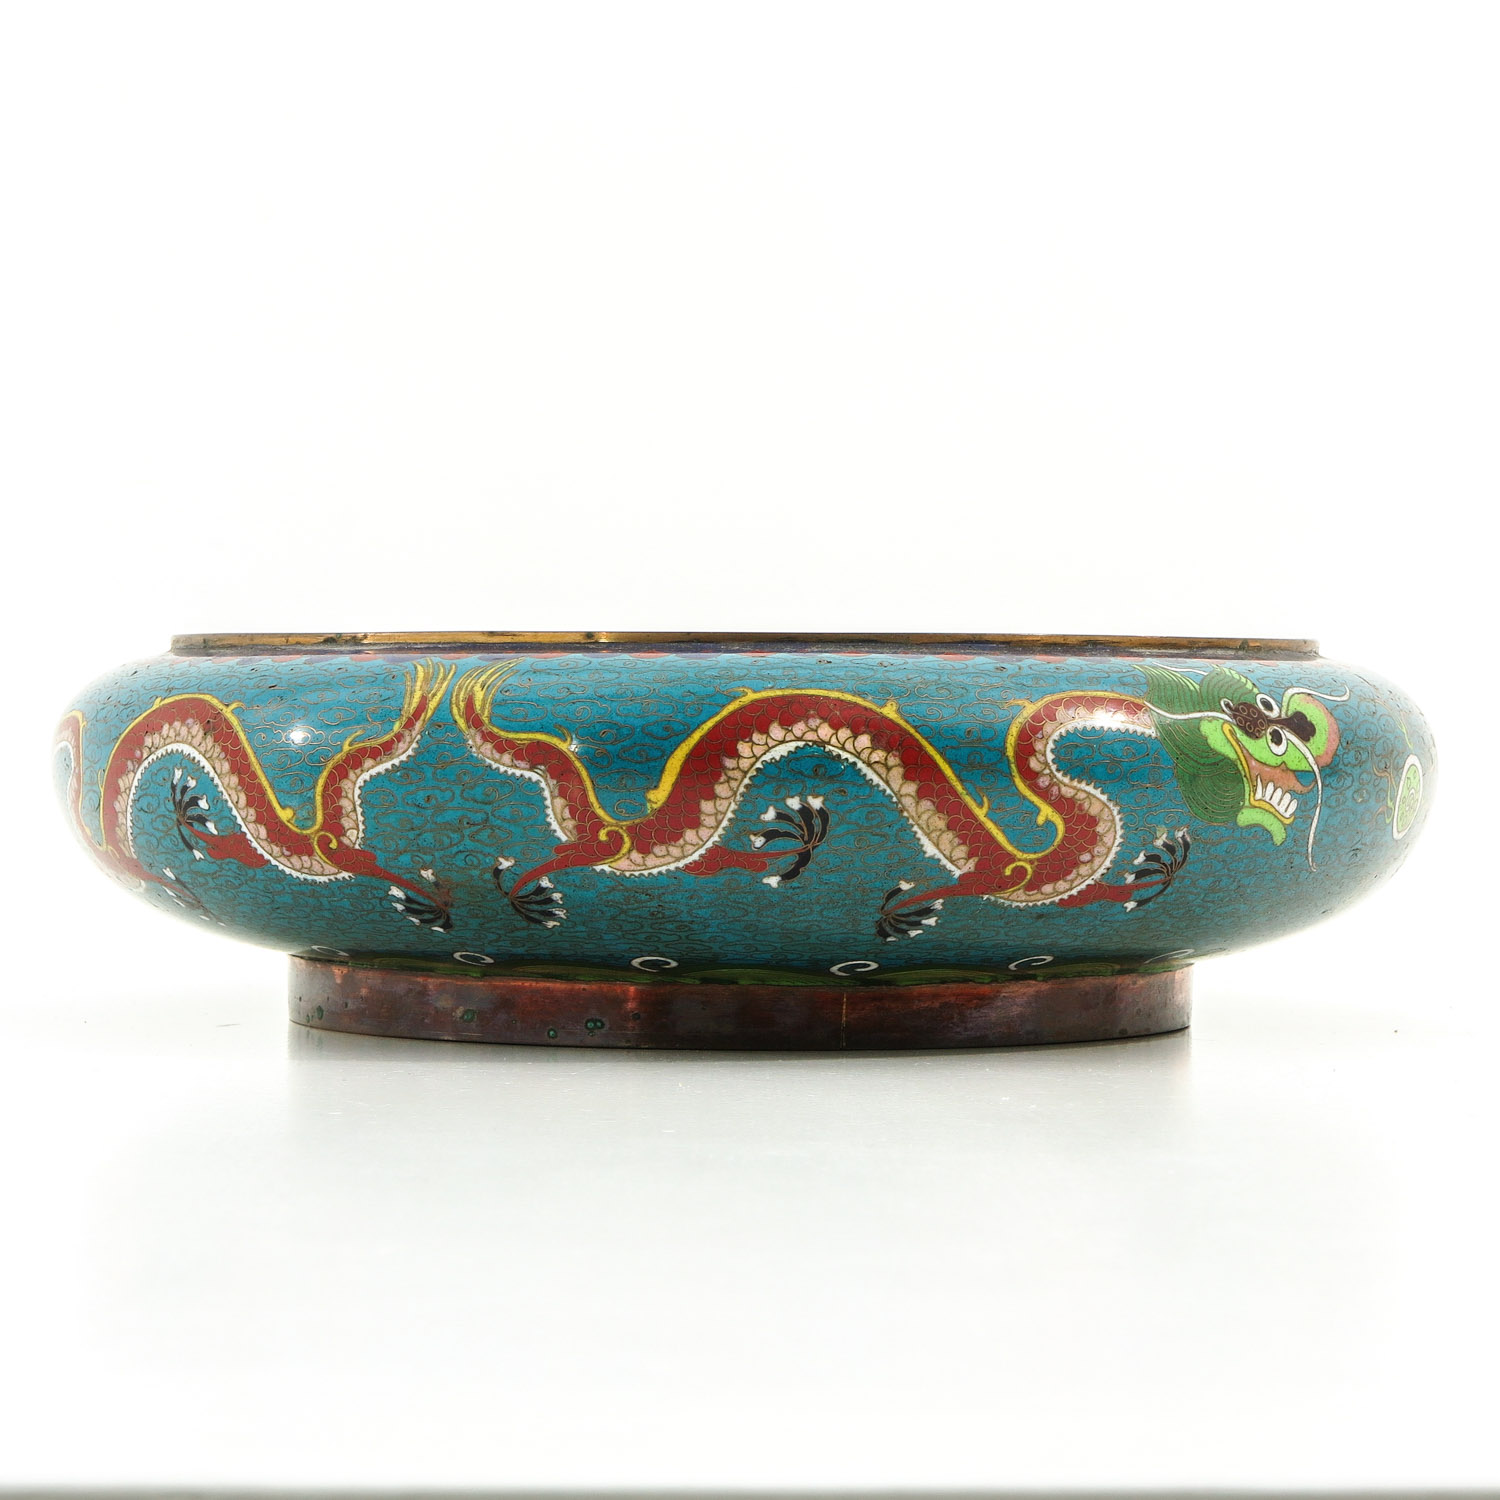 A Cloisonne Censer - Image 2 of 10